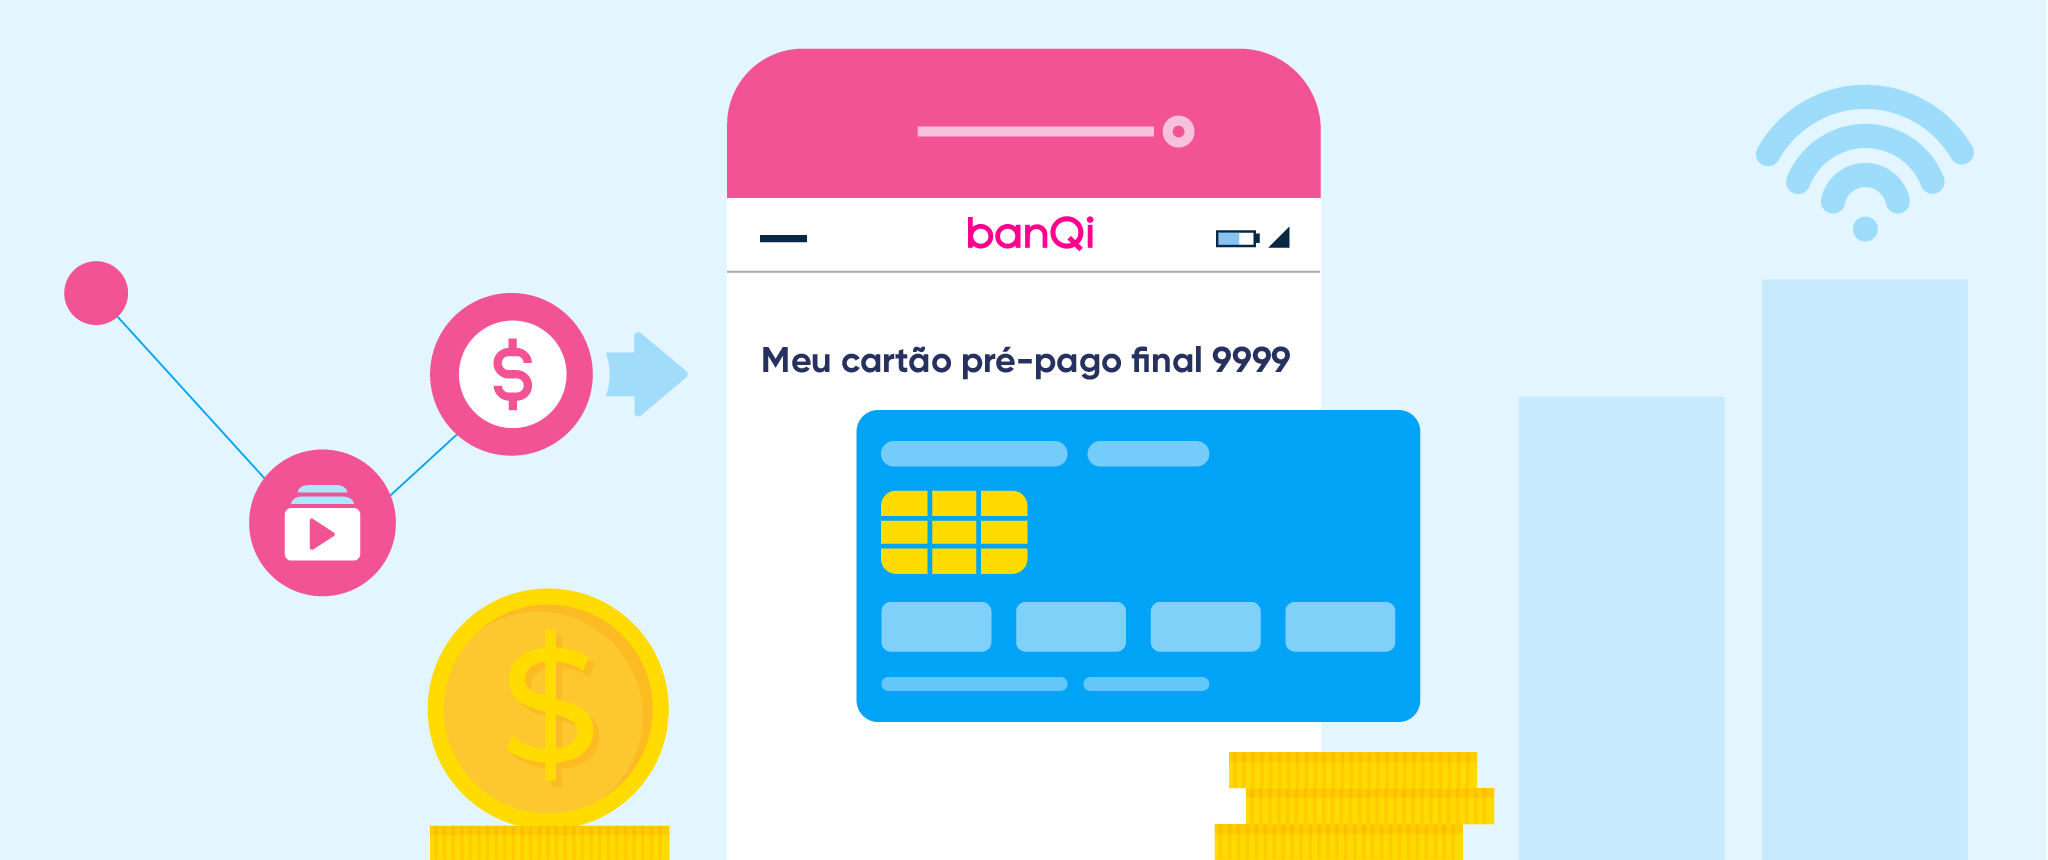 How banQi is Fostering a Customer-Centric Financial Culture in Brazil